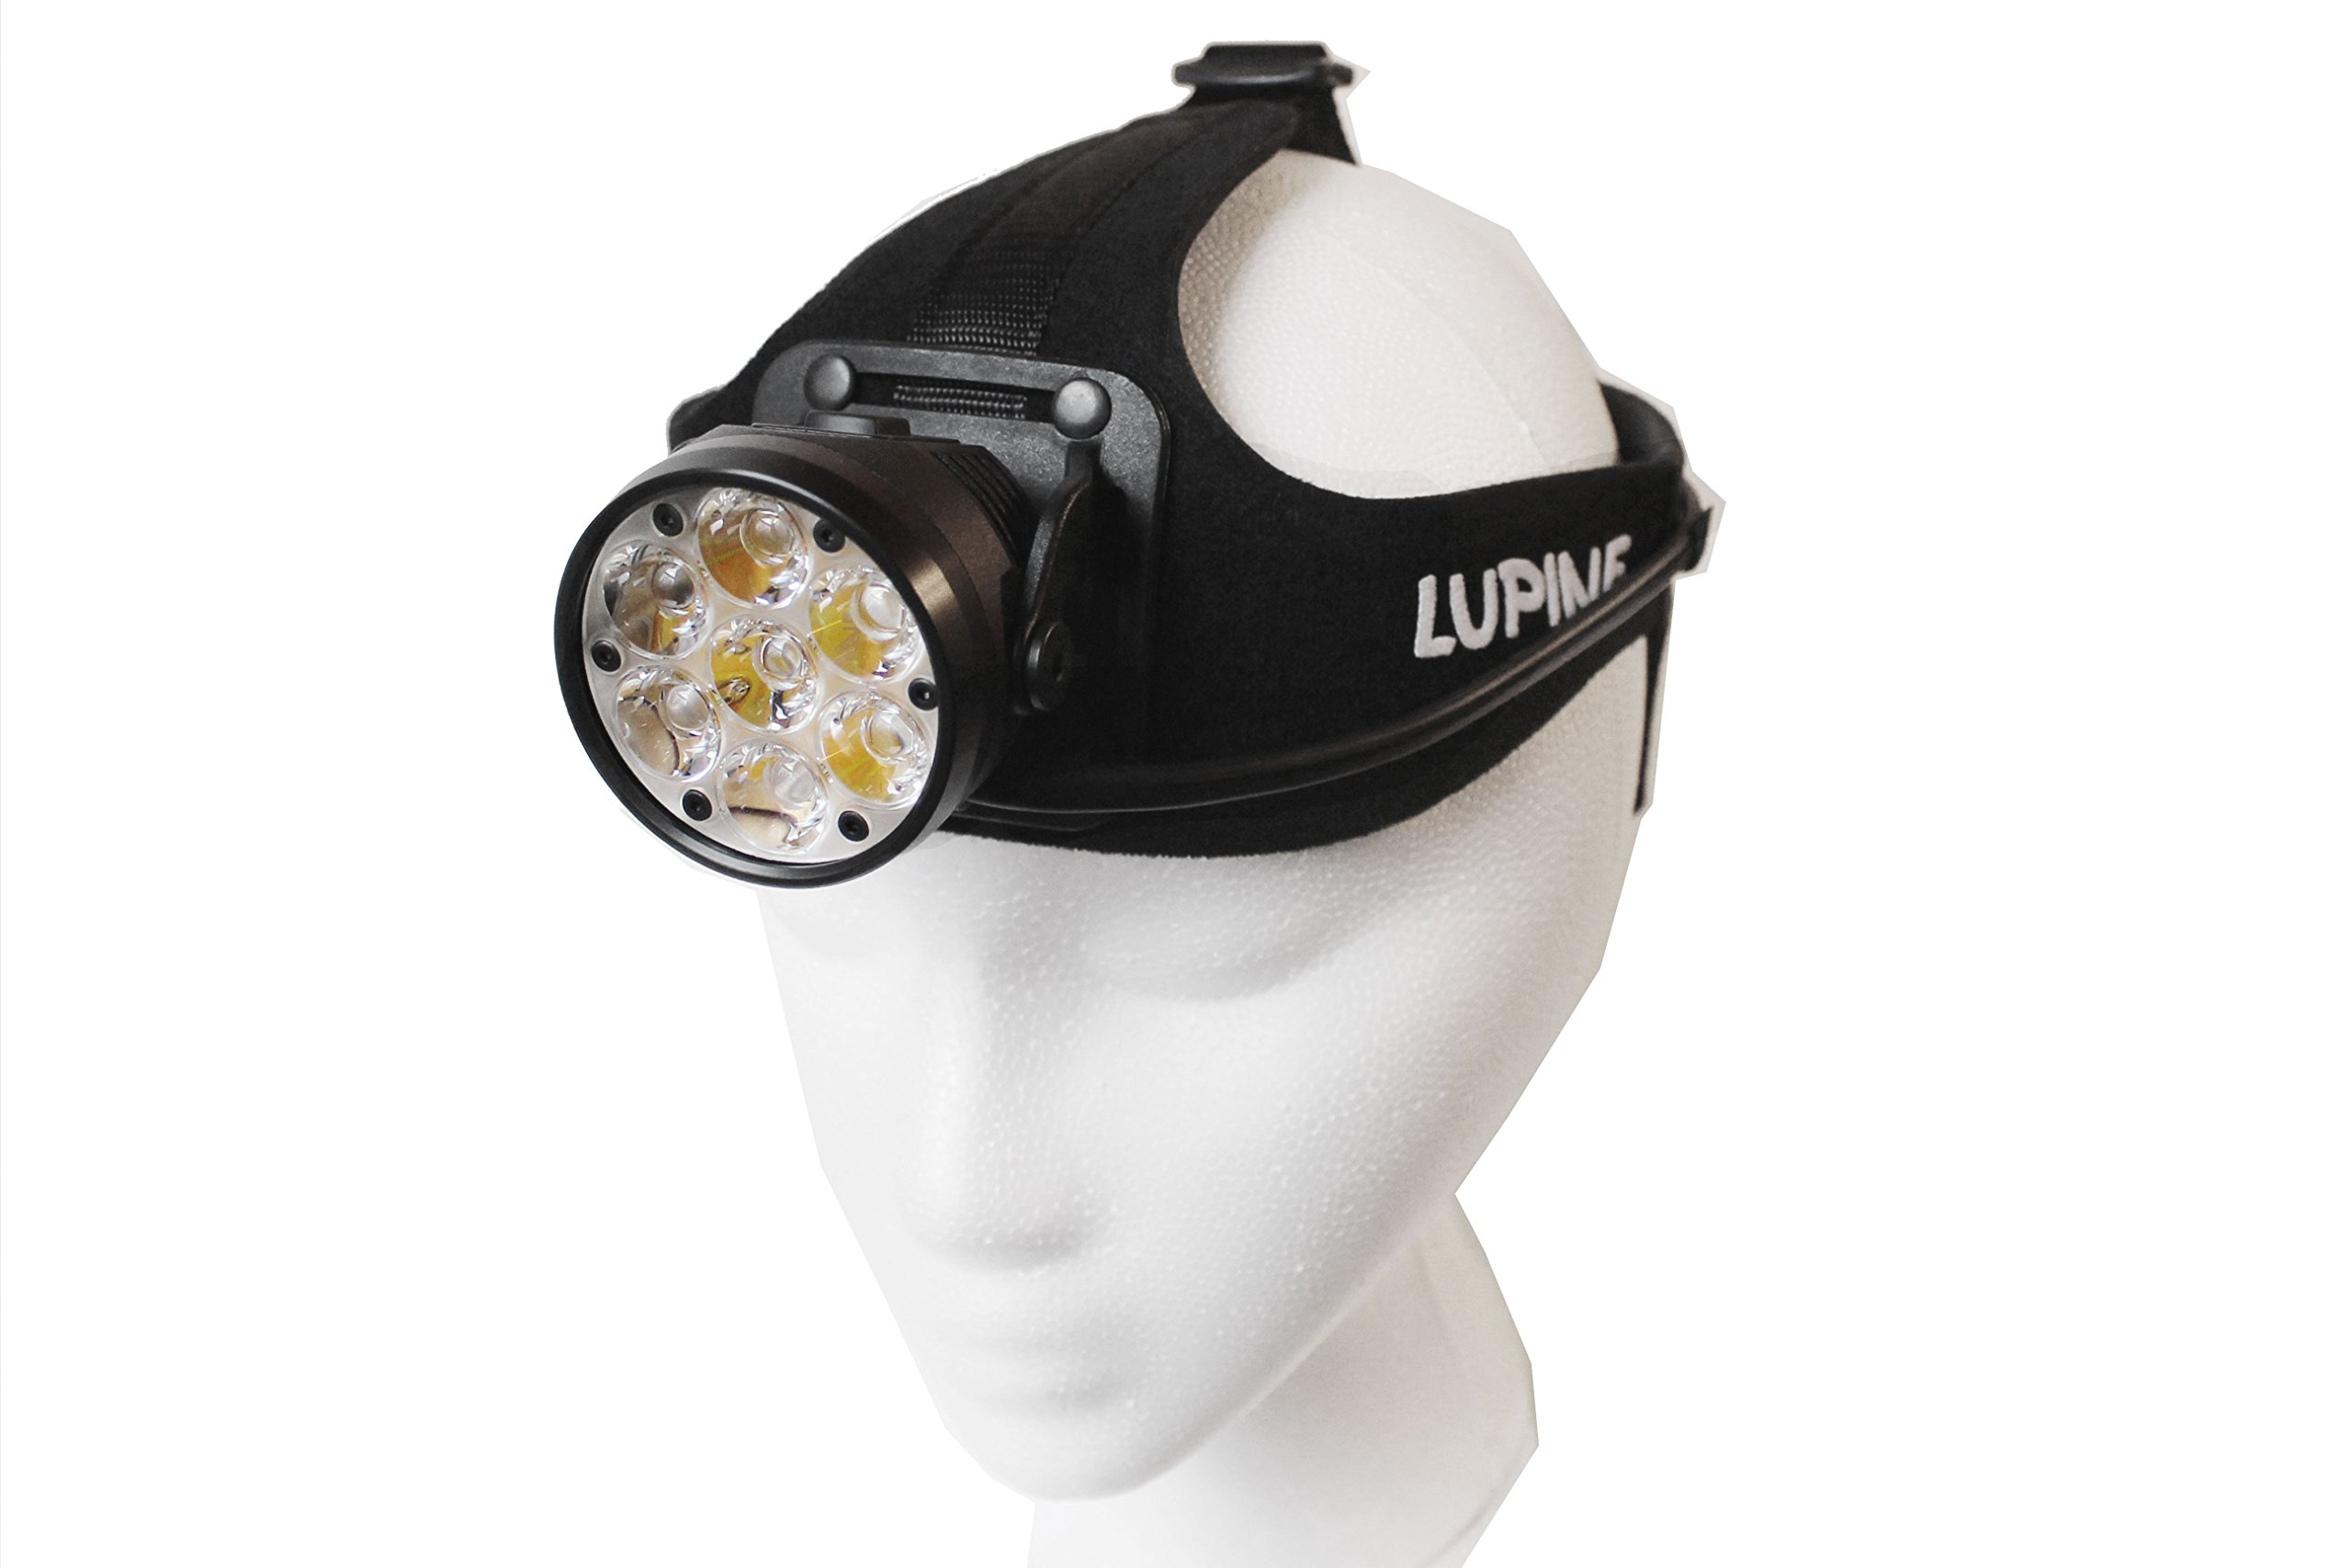 Lupine Lighting Systems Betty RX 14 HD Headlamp, 5000 Lumens, LED, Bluetooth Control, Heavy Duty Headband, Rechargeable 13.2 Ah SmartCore Lithium-ion Battery